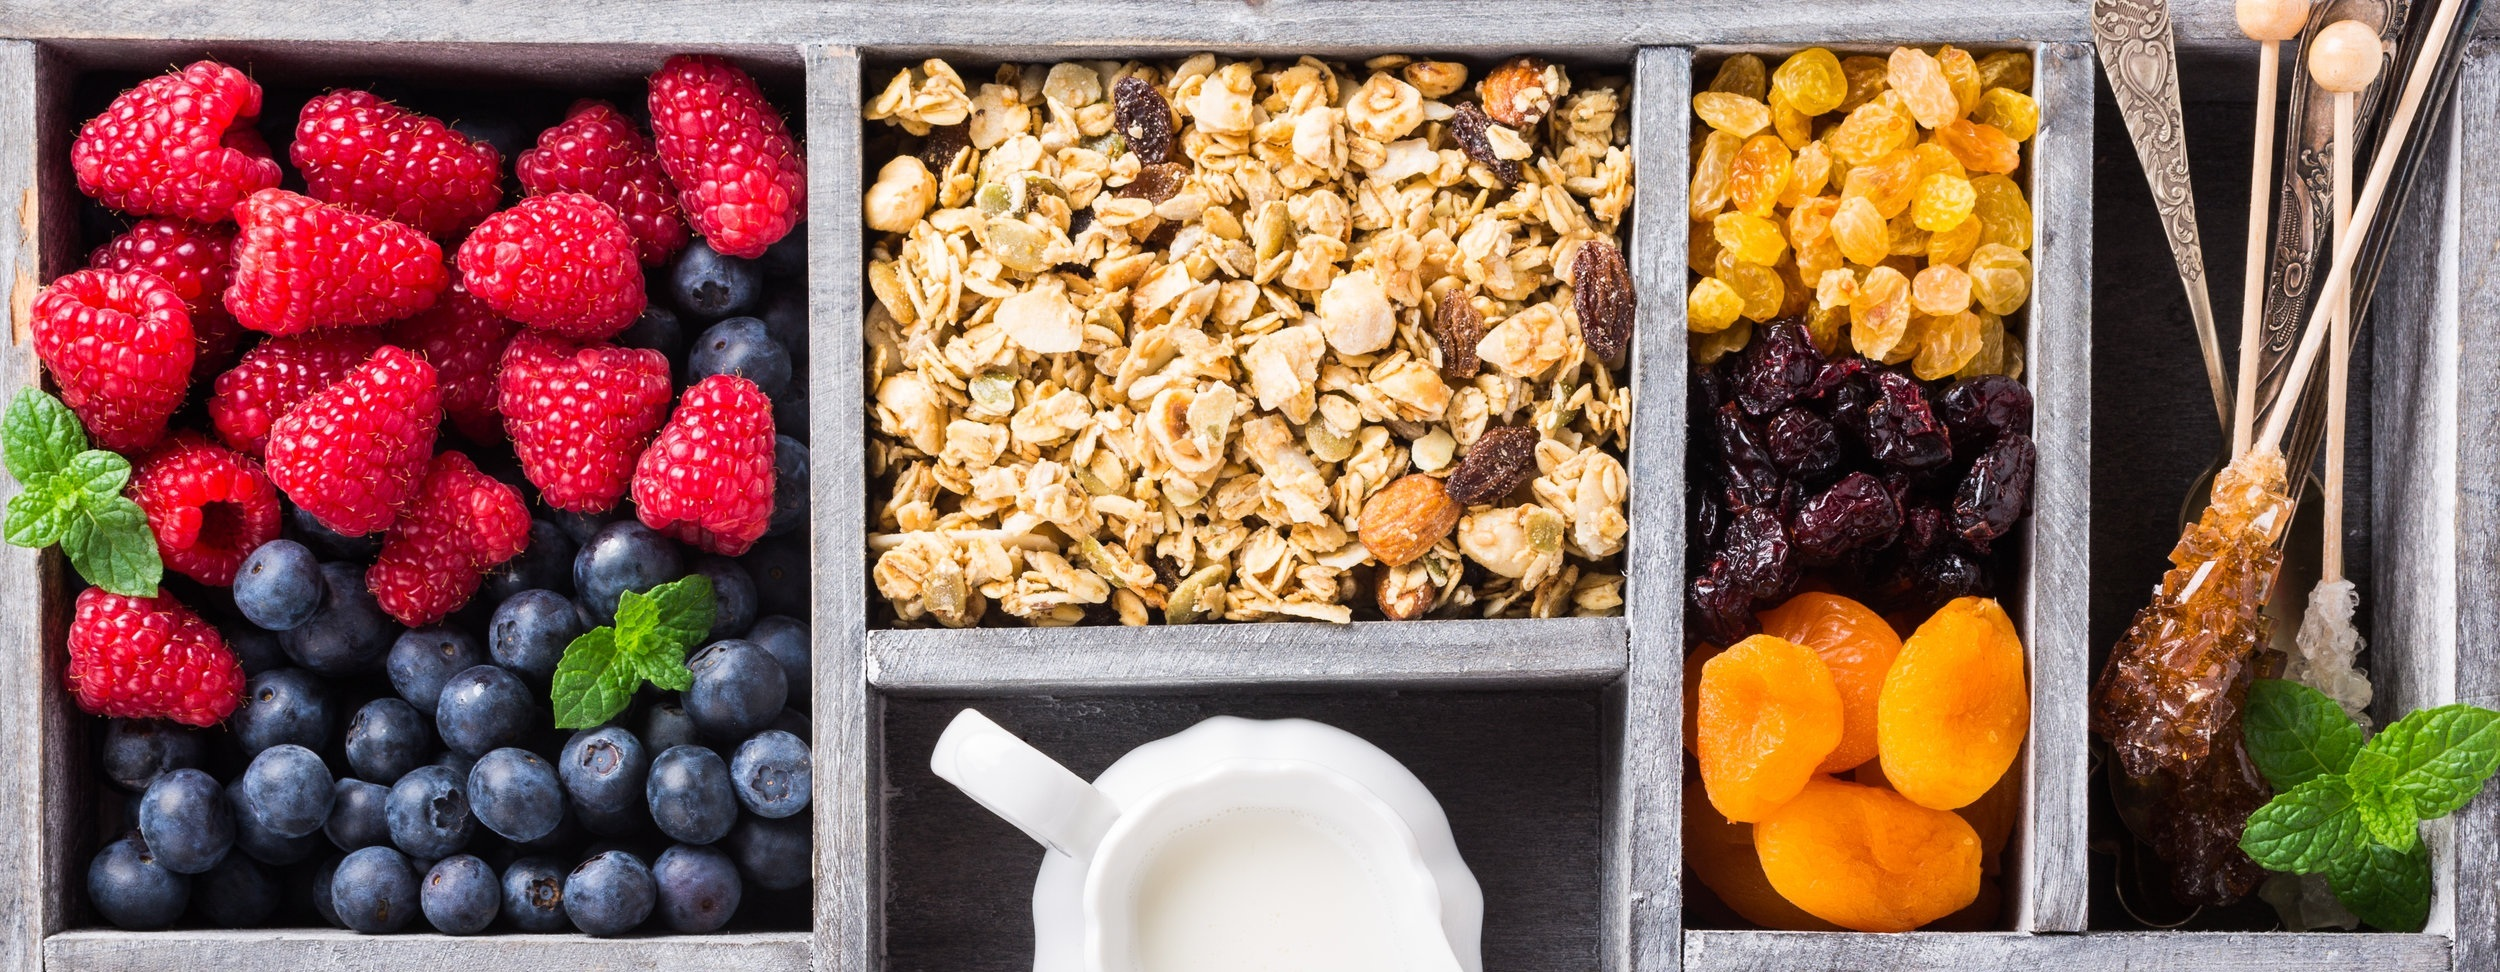 quick-breakfast-cereals-YJACWX9.jpg